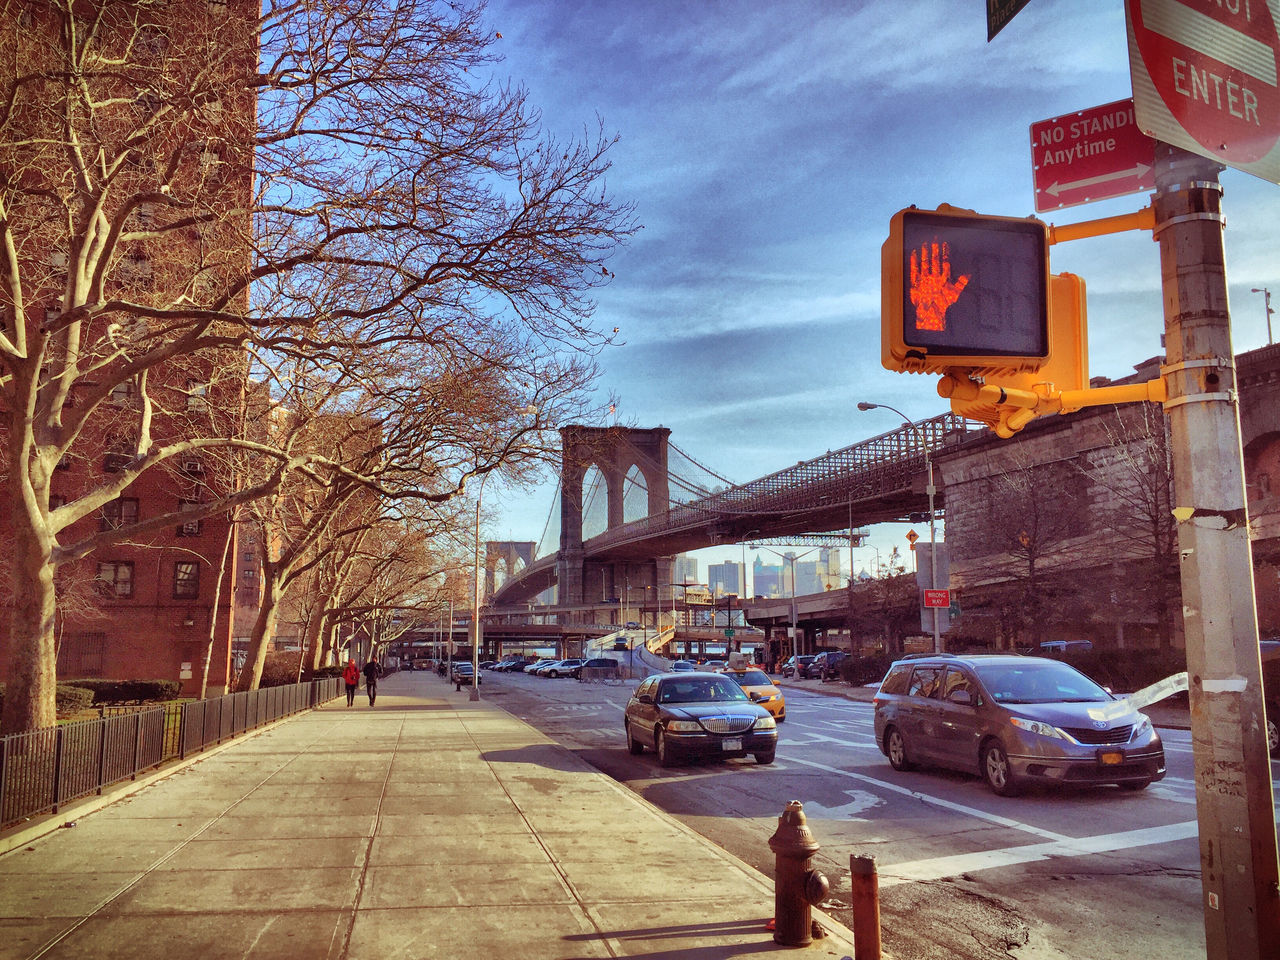 Architecture Bridge Brooklyn Bridge  Building Exterior Built Structure City Day HDR New York Outdoors Red Hand Signal Sky Stop Walking Street Photography Traffic Light  Transportation Travel Destinations Trees USA